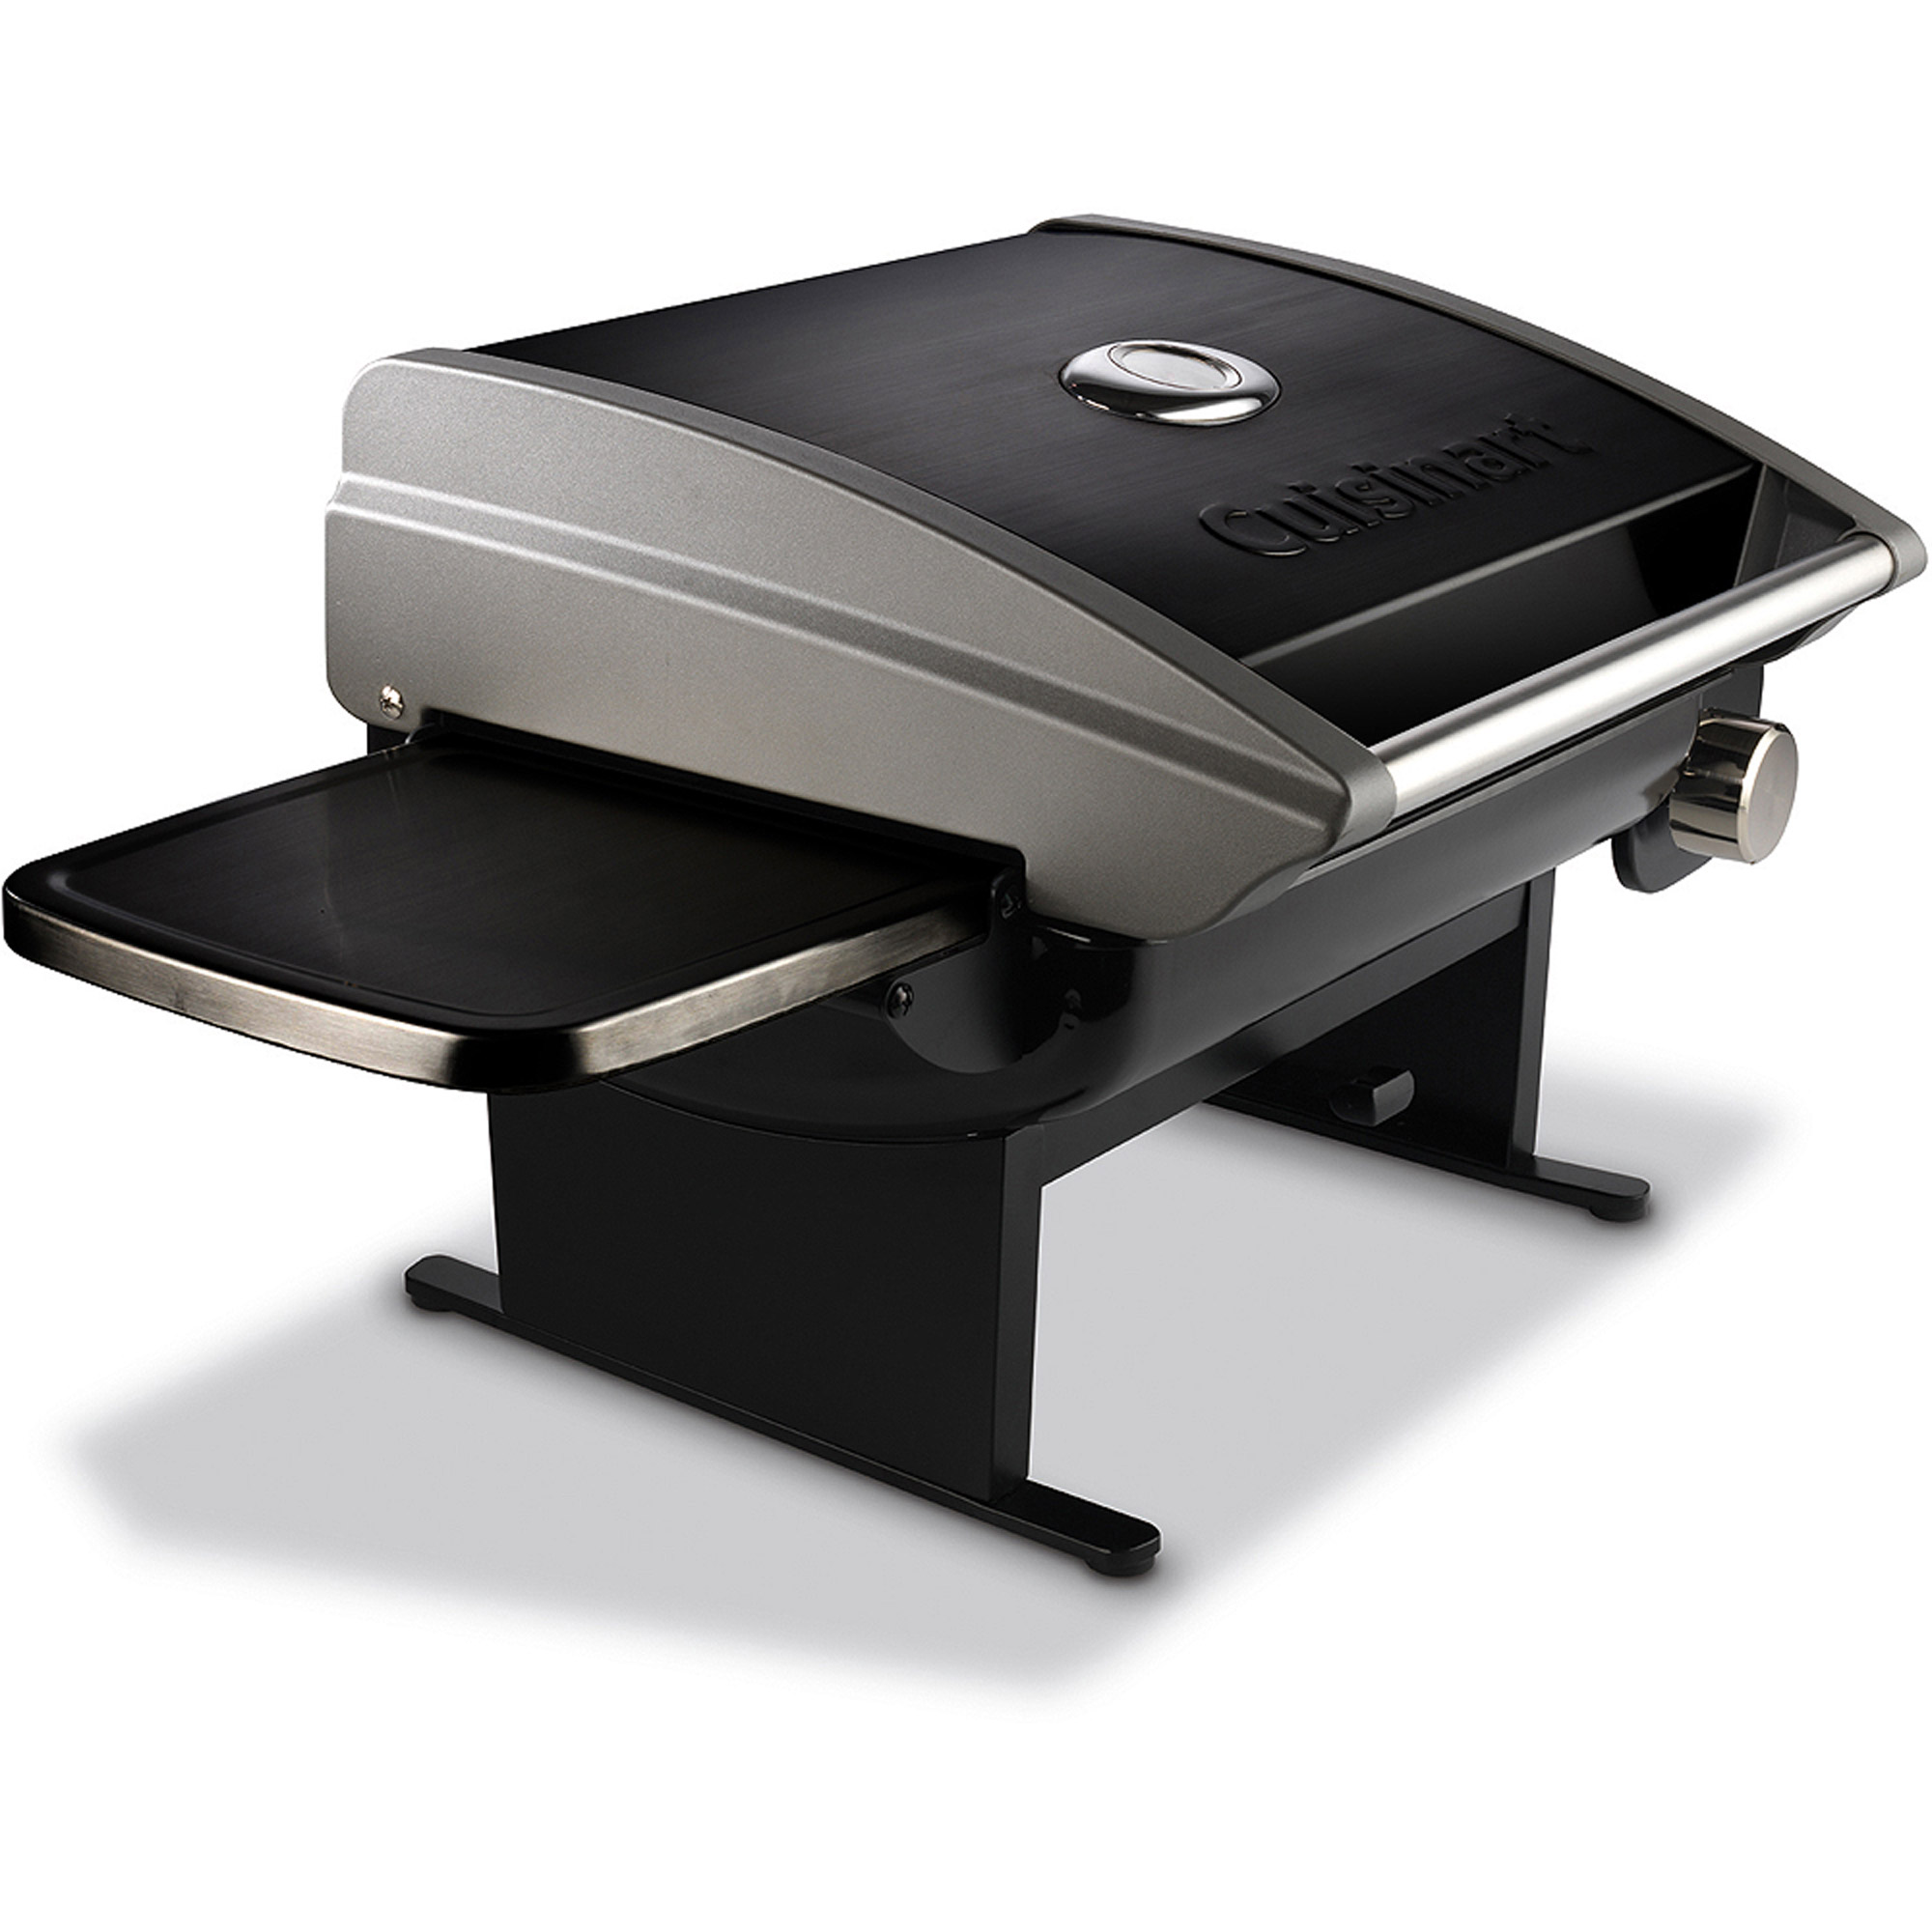 Cuisinart All-Foods Gas Grill, Black, CGG-200B